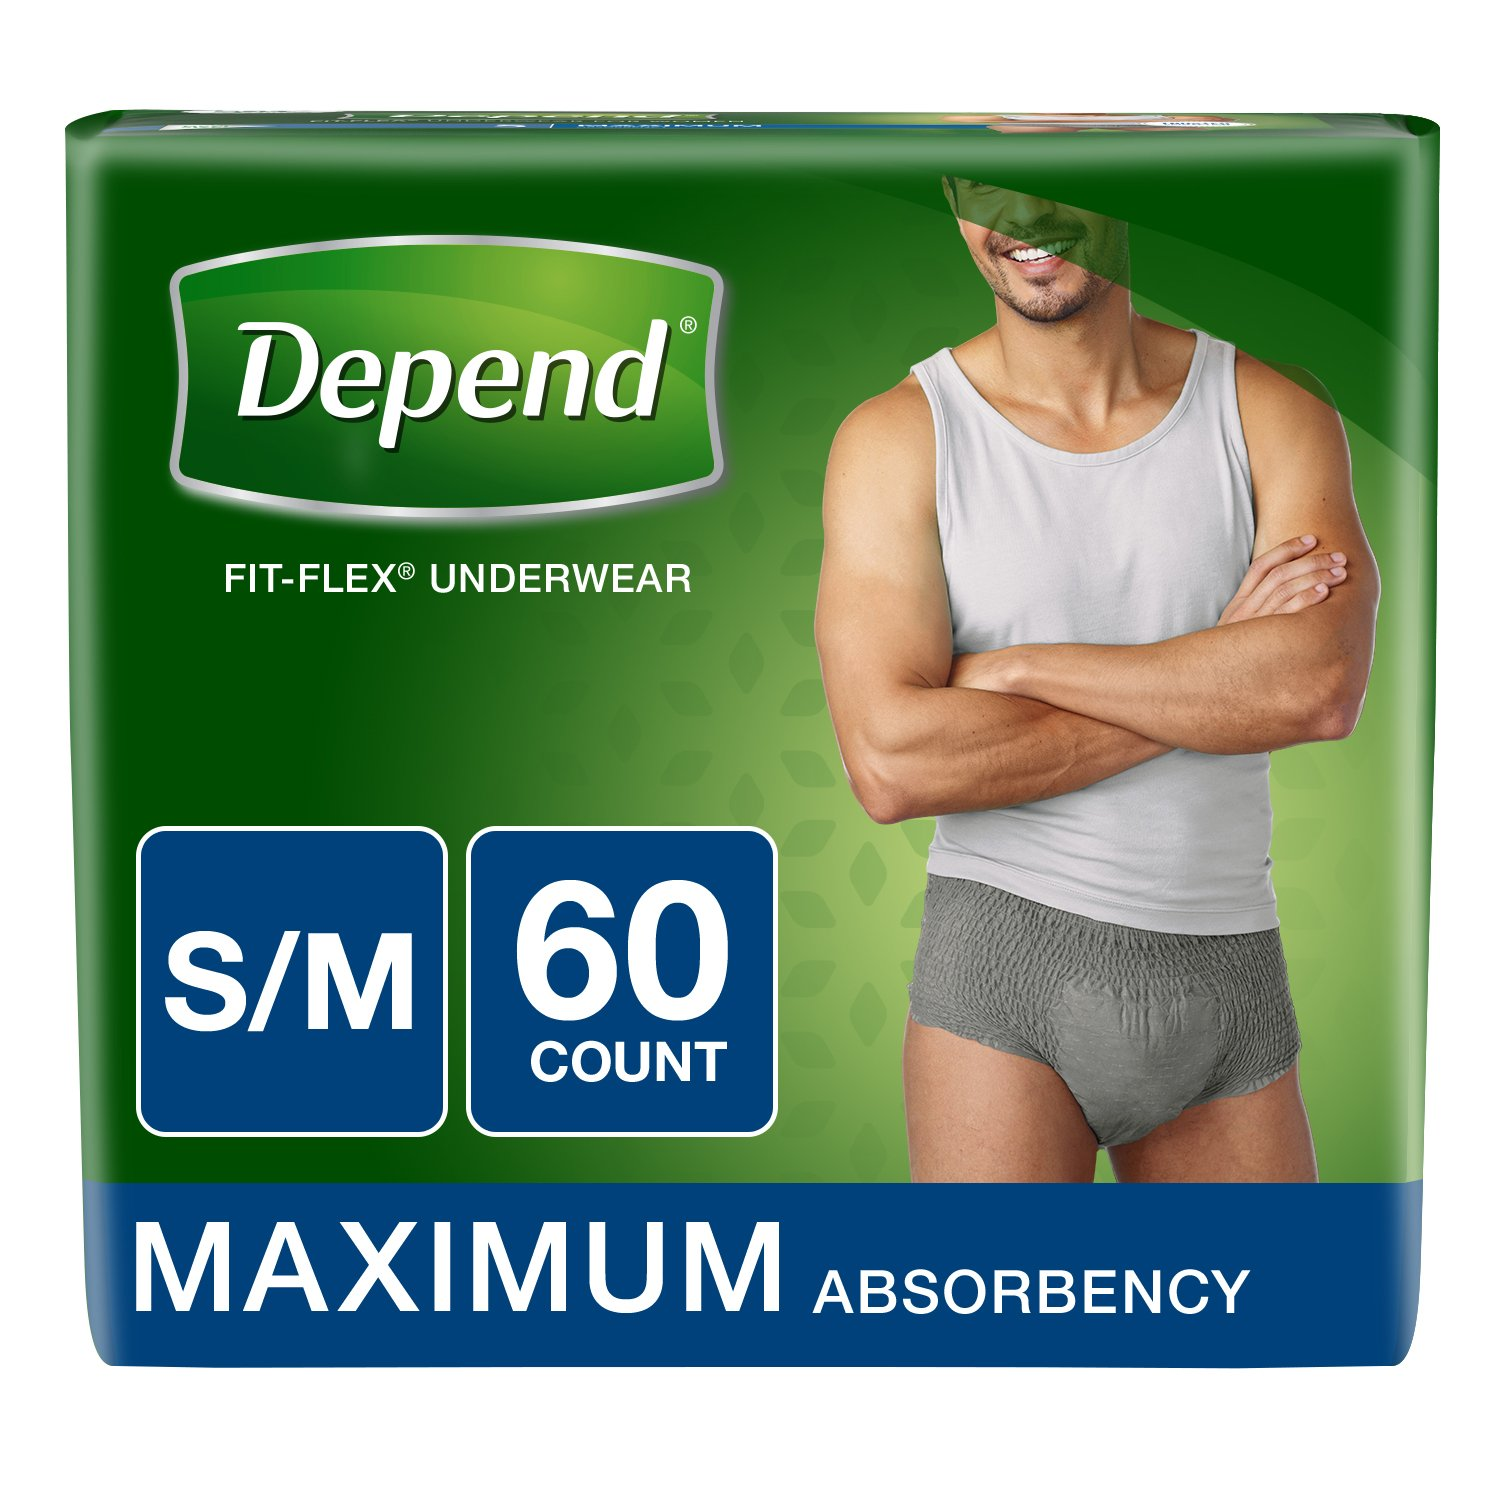 Depend FIT-Flex Incontinence Underwear for Men, Maximum Absorbency, S/M,